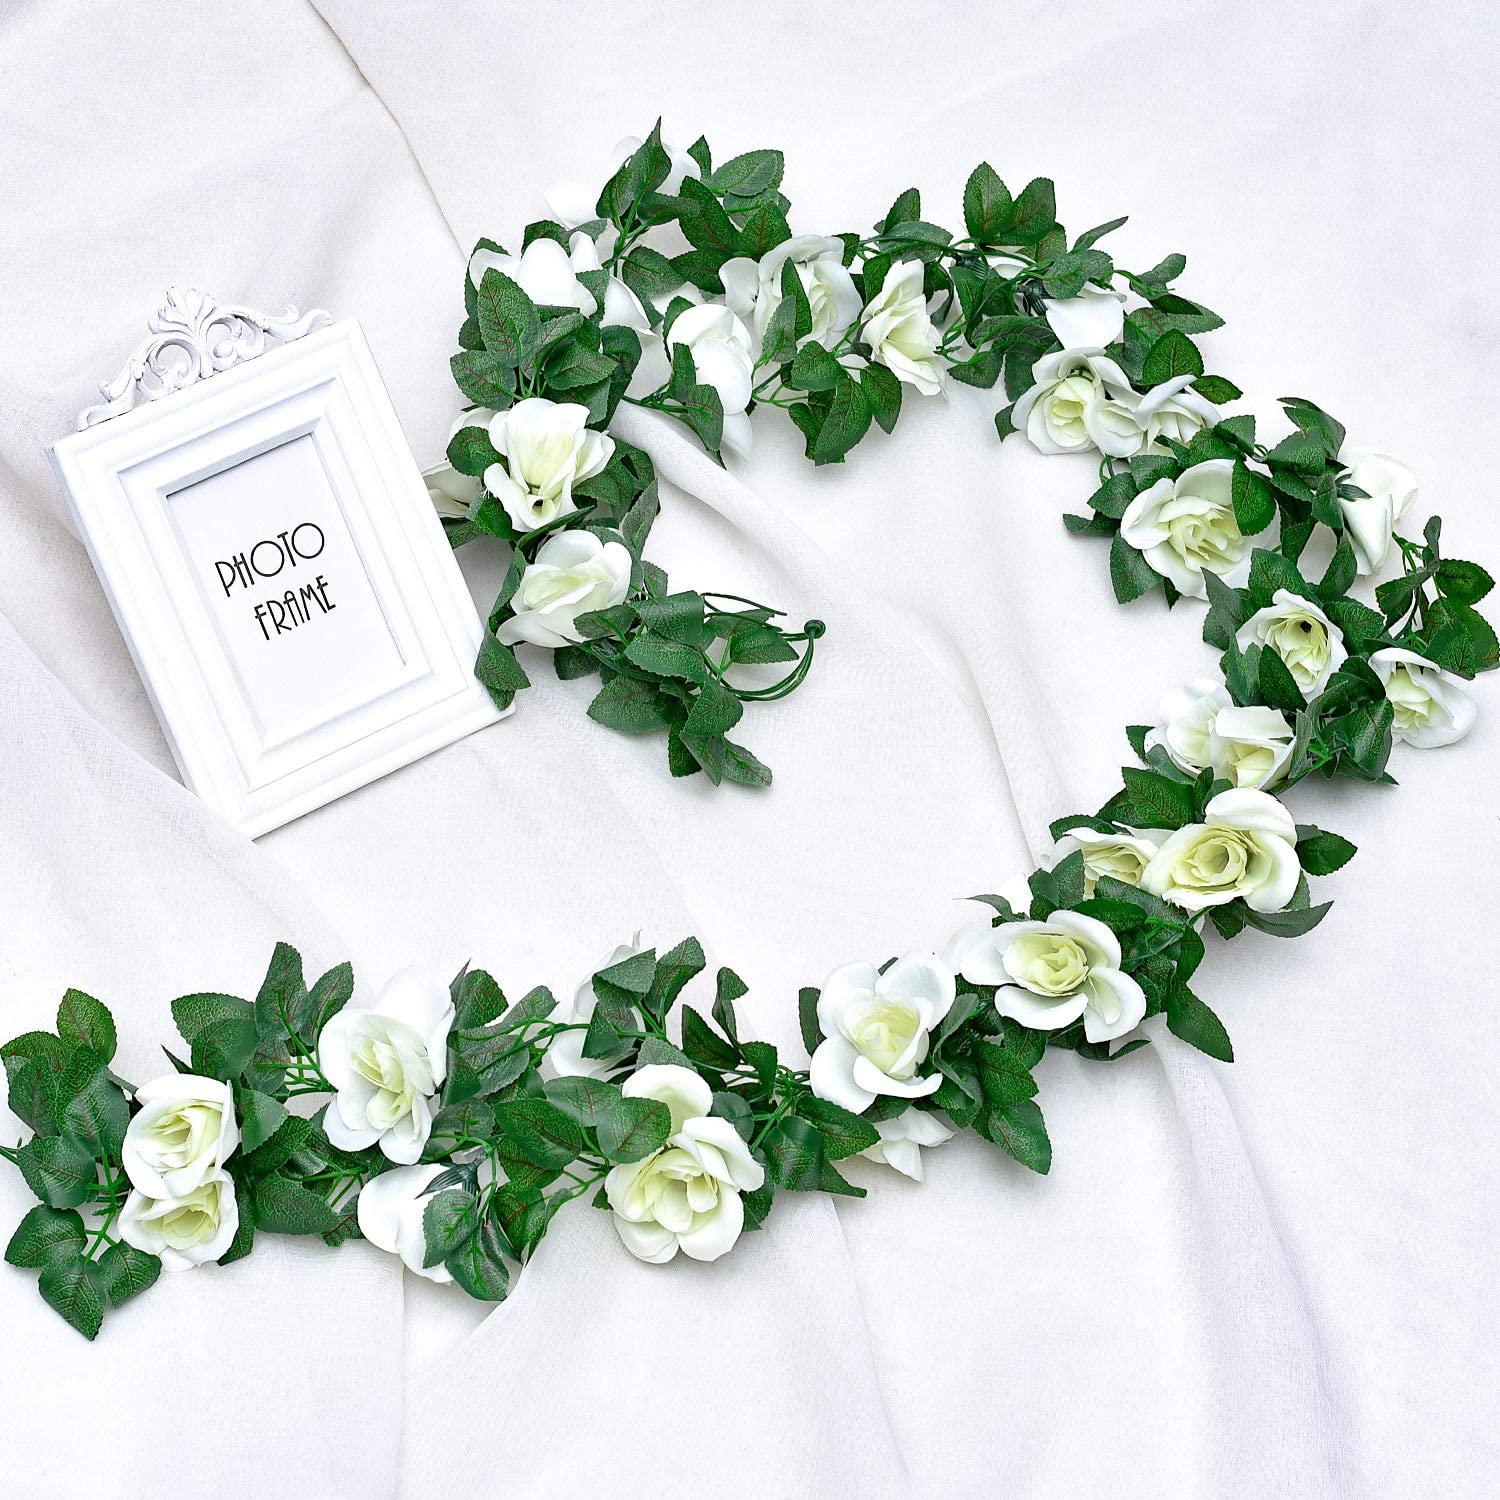 Whaline 2 Pack Fake Rose Vine Flowers Plants 15ft White Artificial Flower Hanging Rose Garlands For Home Hotel Office Wedding Party Garden Craft Art Decor Arch Arrangement Decoration Amazon Co Uk Kitchen Home